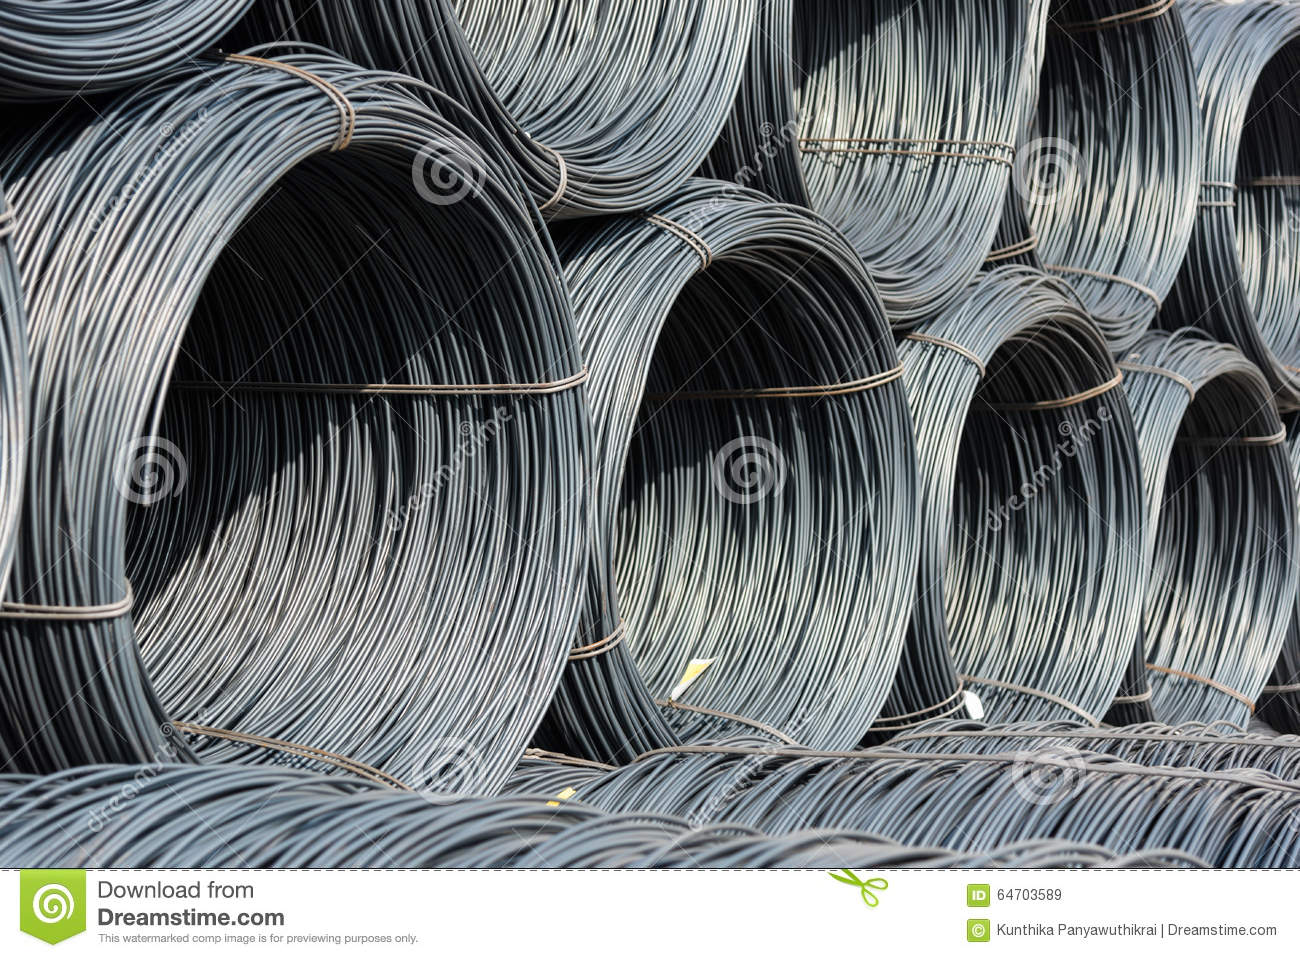 Pile Of Wire Rod Or Coil For Industrial Usage Stock Image - Image of ...